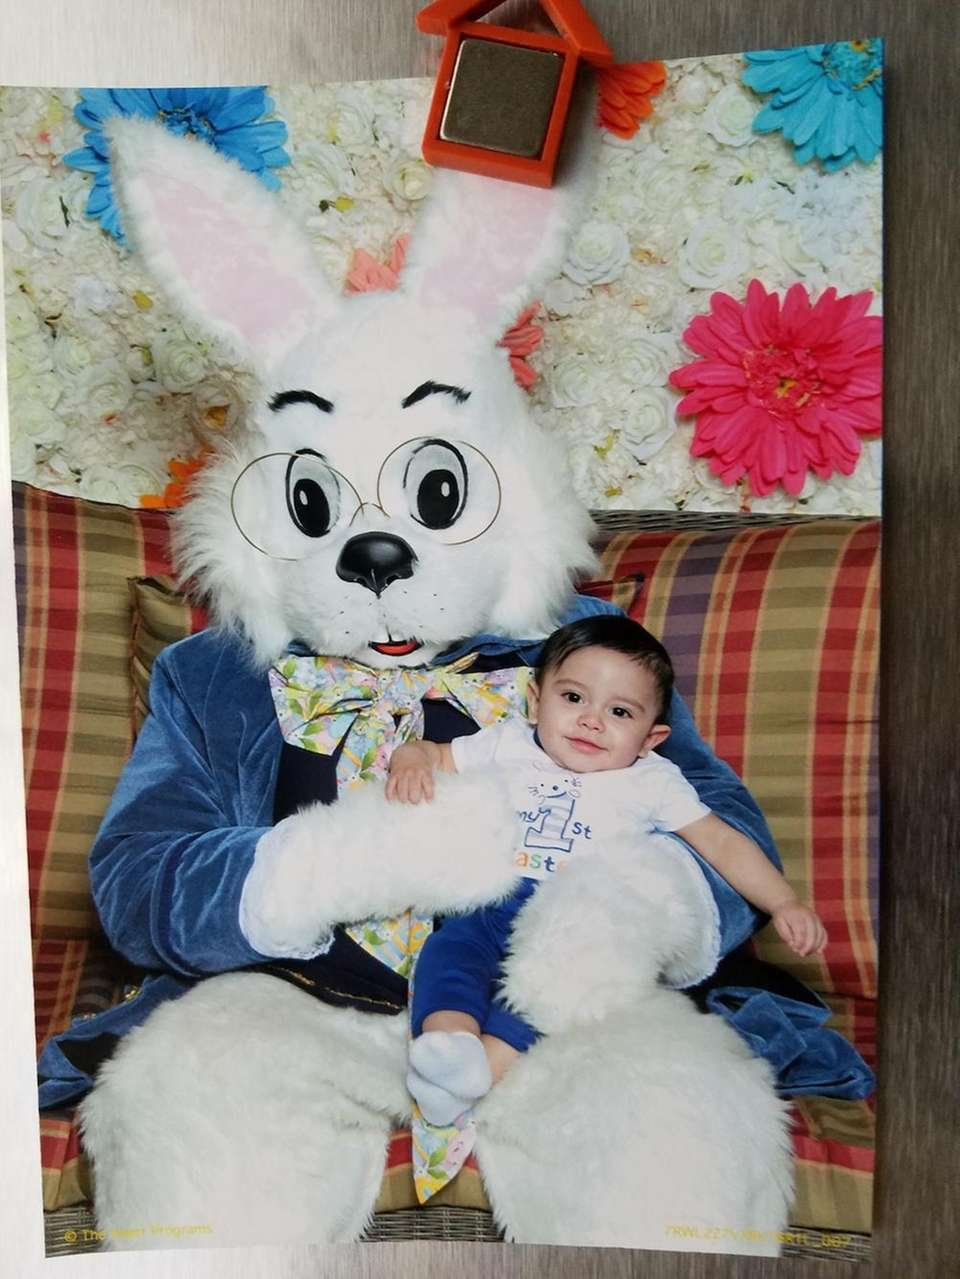 Lucas' first Easter